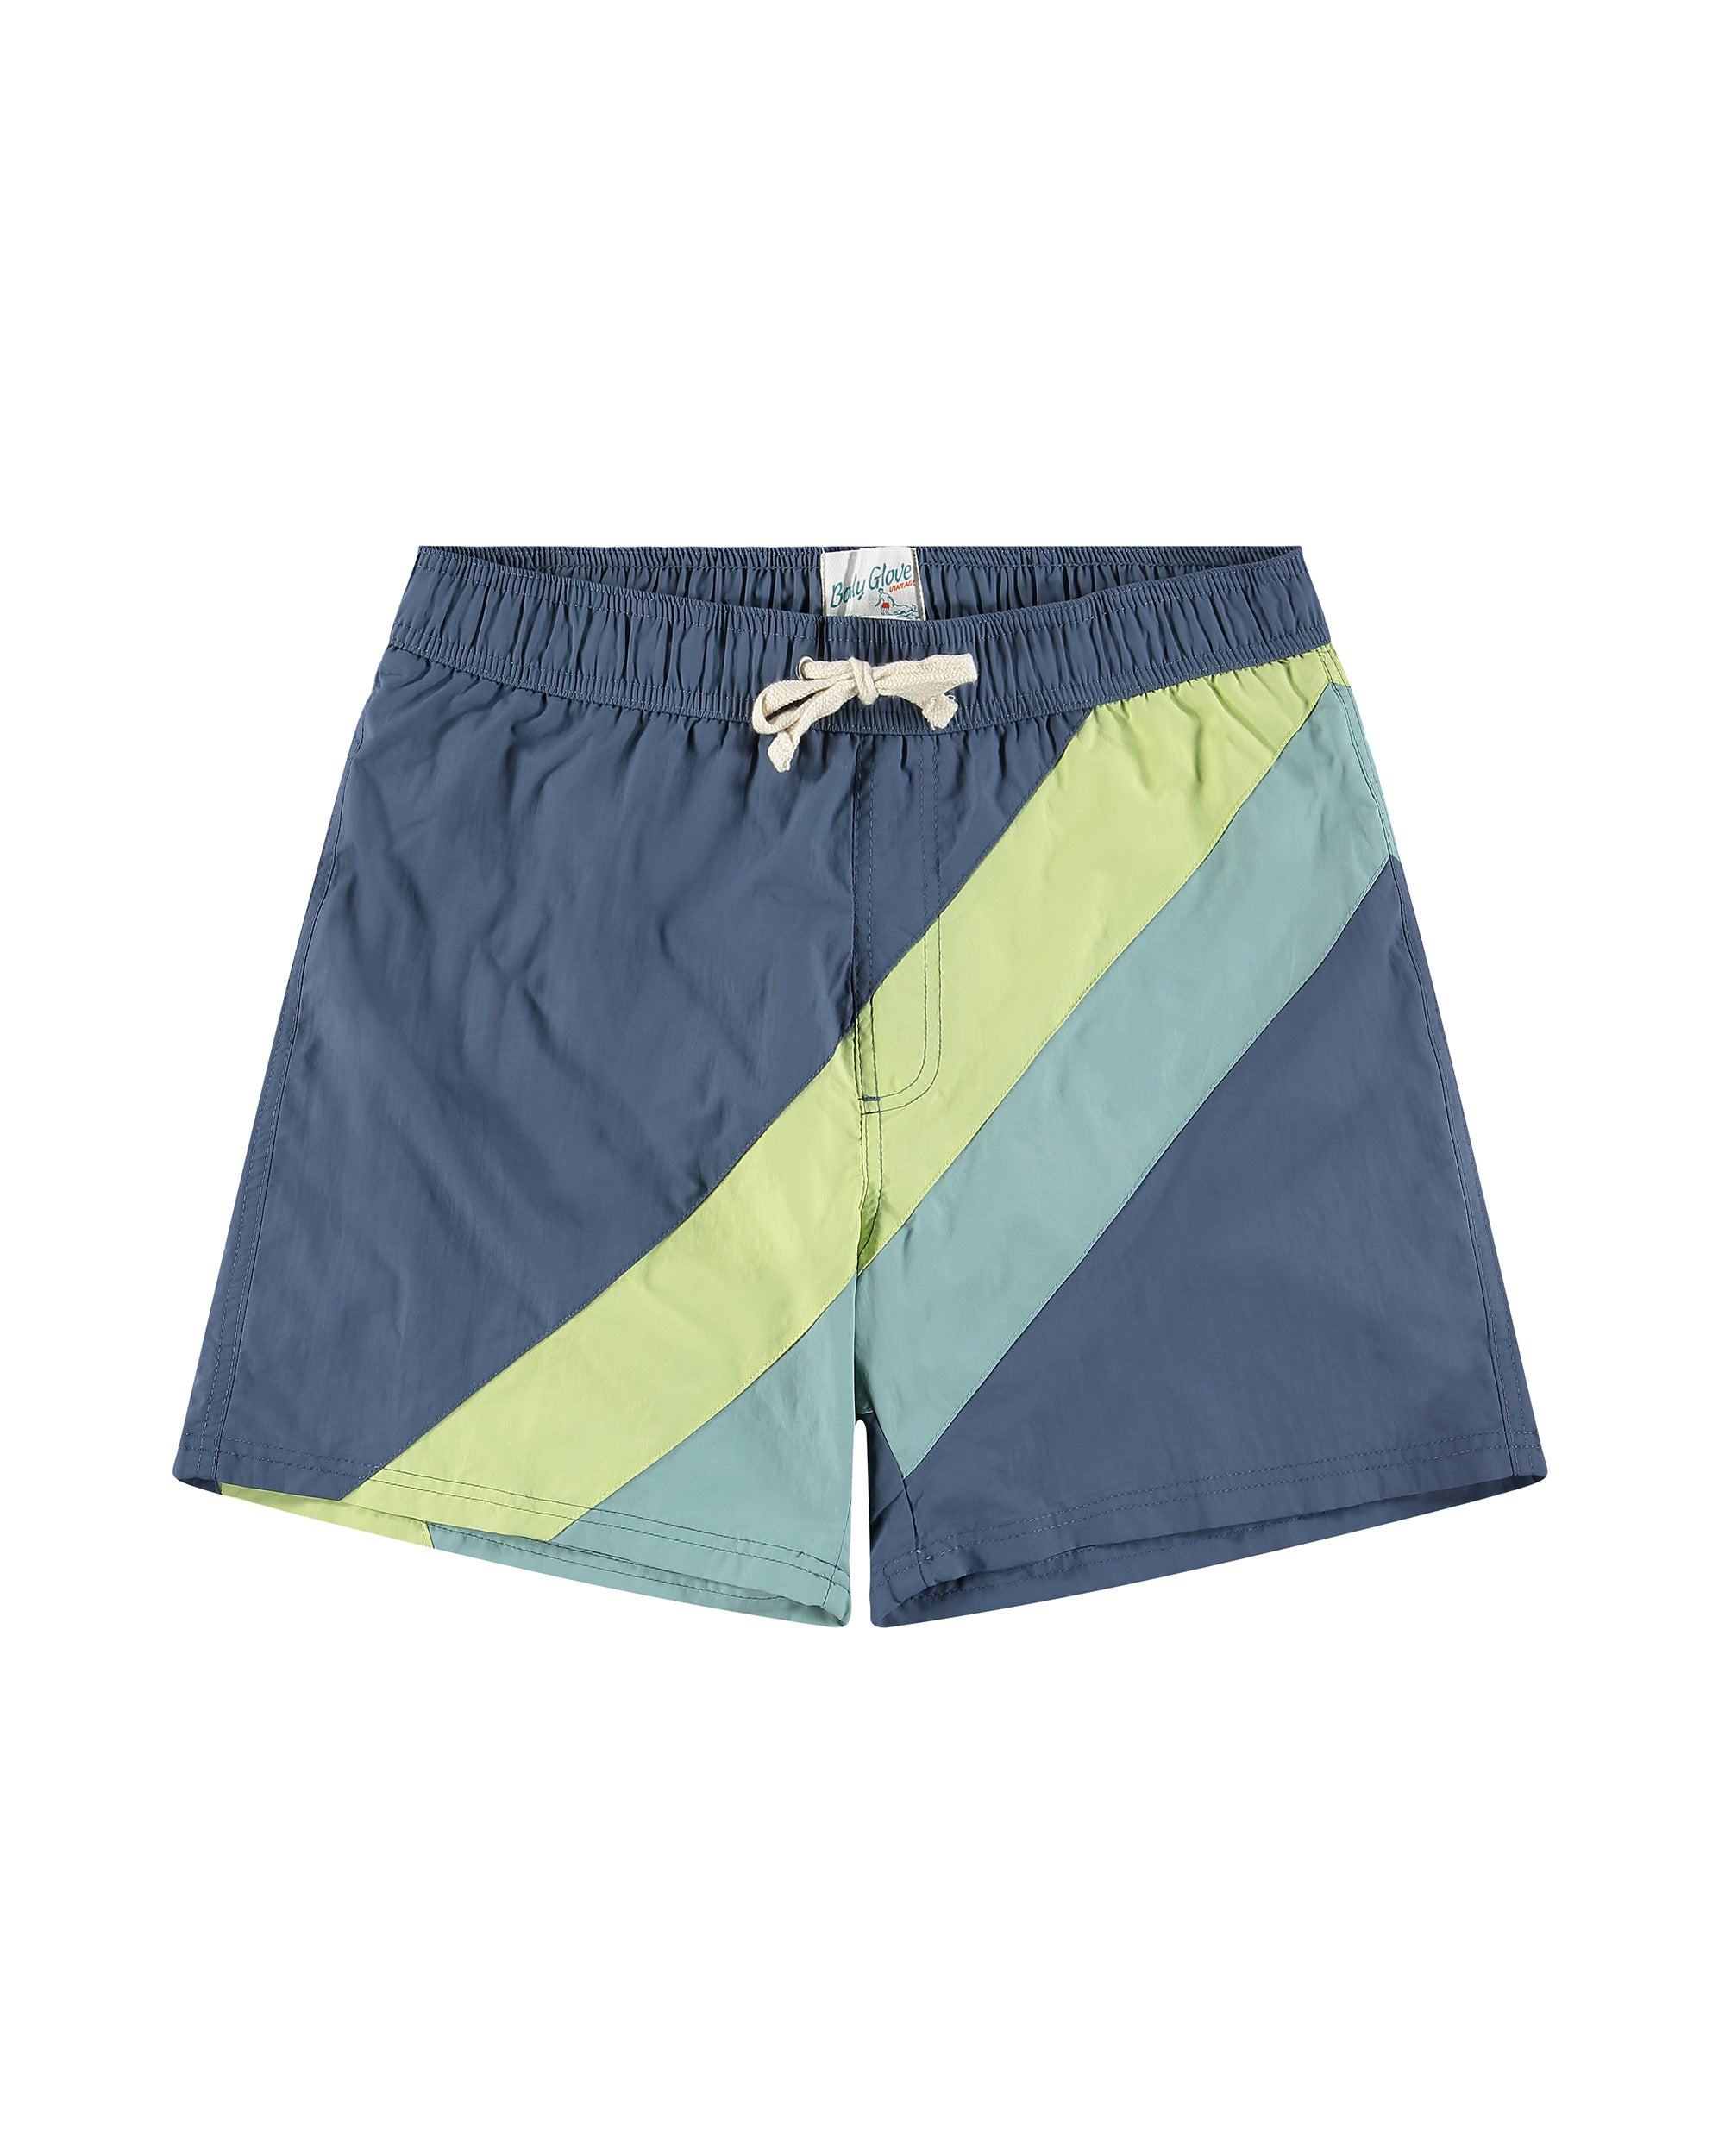 Men's 17-inch Melbourne Swim Short - Dark Blue